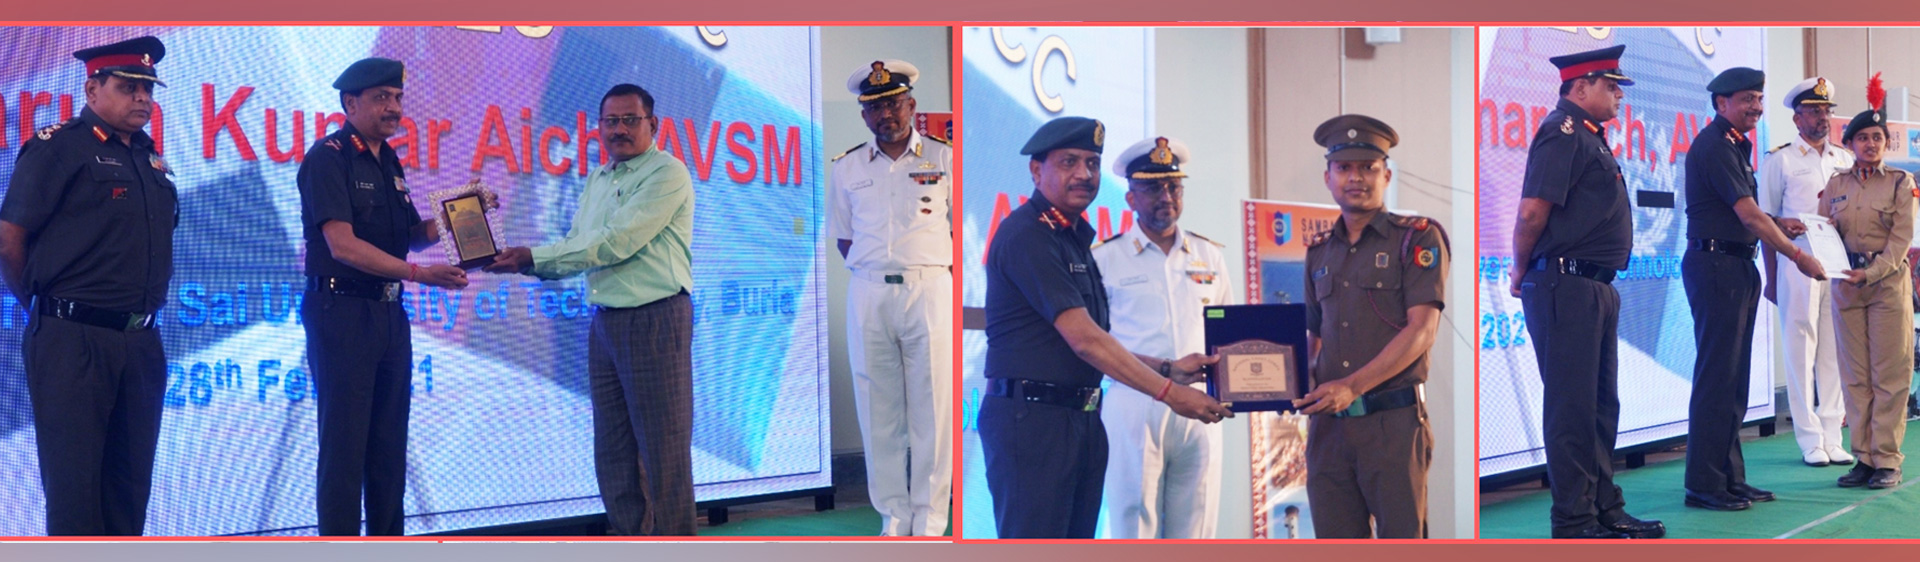 Cdt Payal Sahu and Lt. Birendra Kumar Barik has been awarded DG Commendation Card & DG Plaque respectively by the Director General of NCC Lt. General Tarun Kumar Aich, AVSM for the most sincere, dedicated and exemplary performance in NCC.